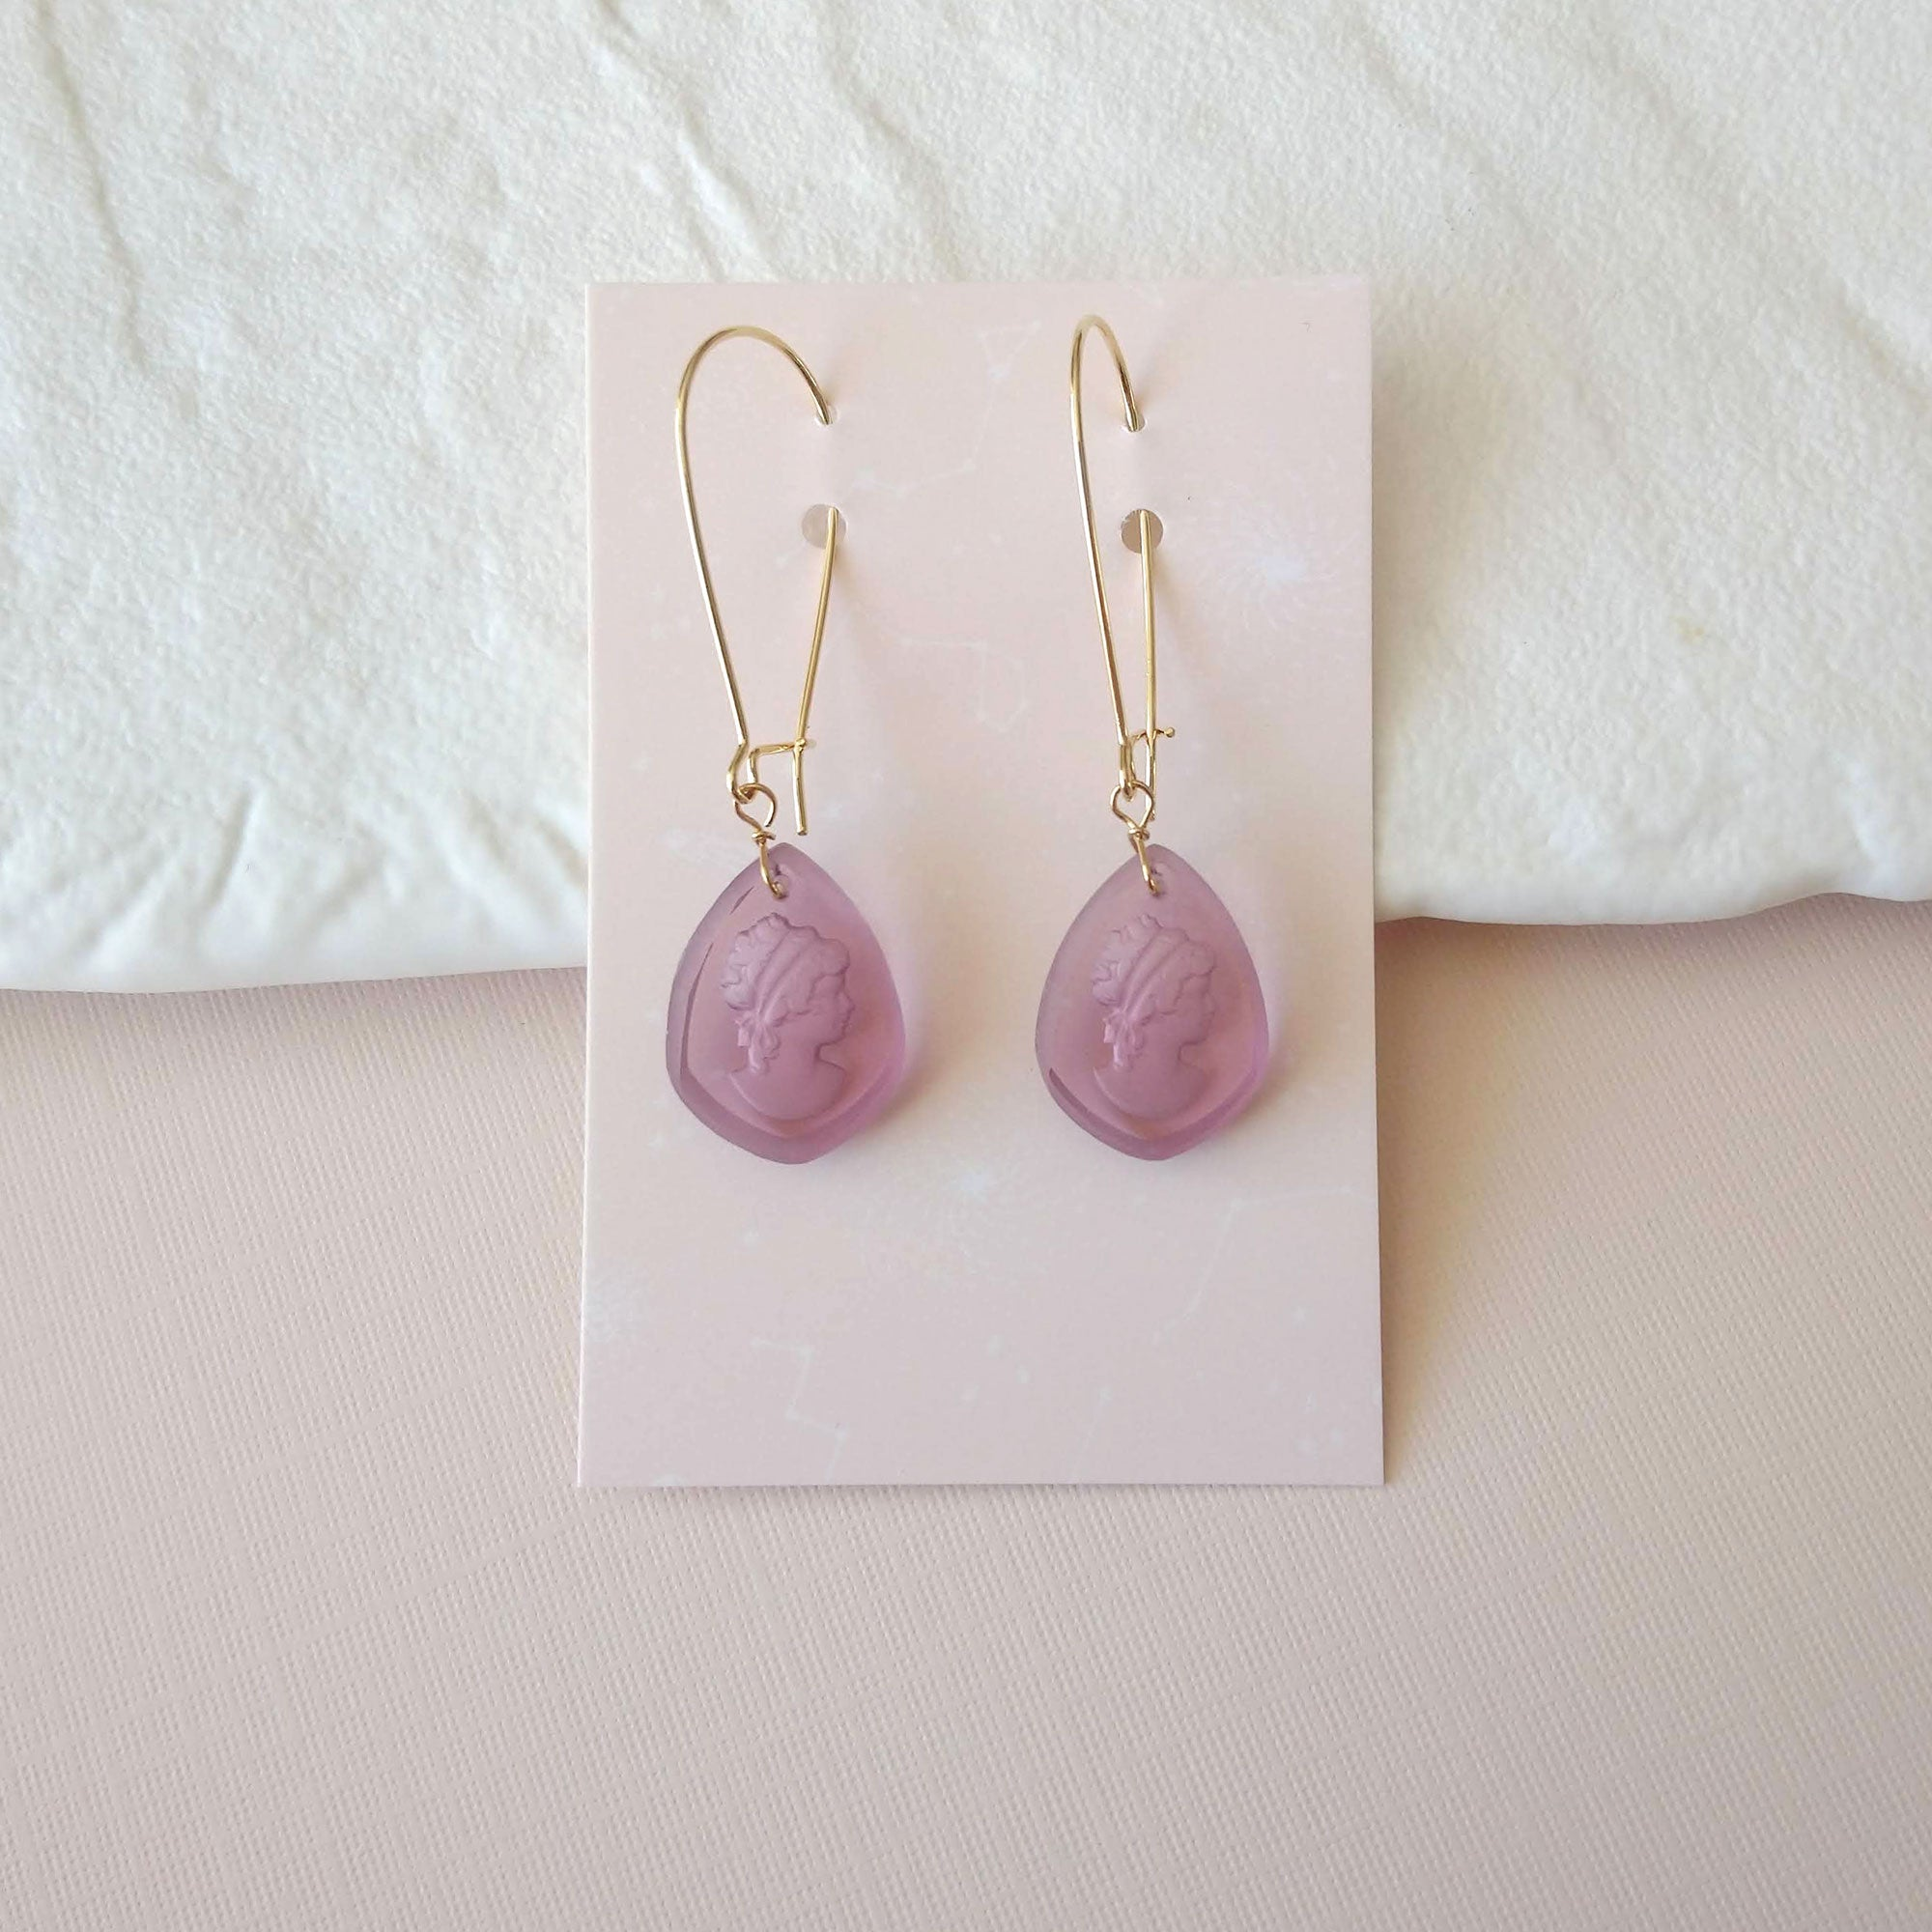 canadian made jewelry earrings